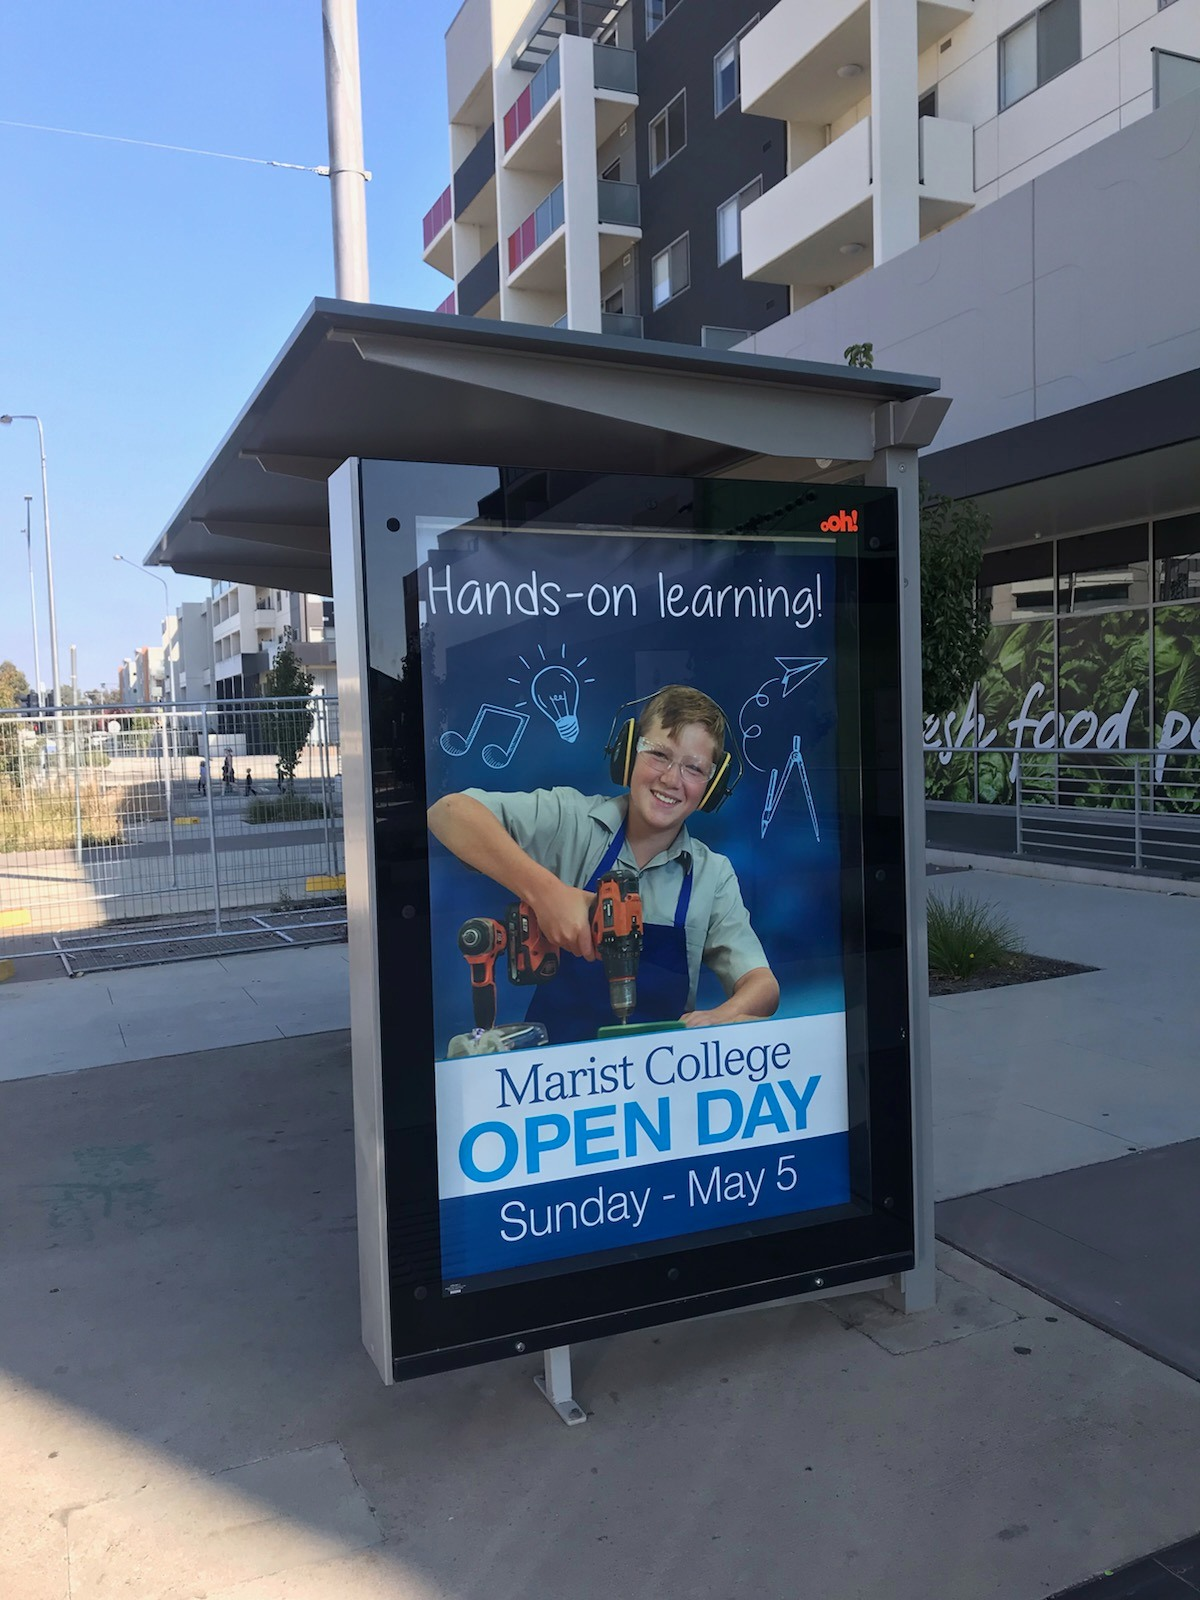 Bus Shelter Poster Promoting Marist College Open Day 2019